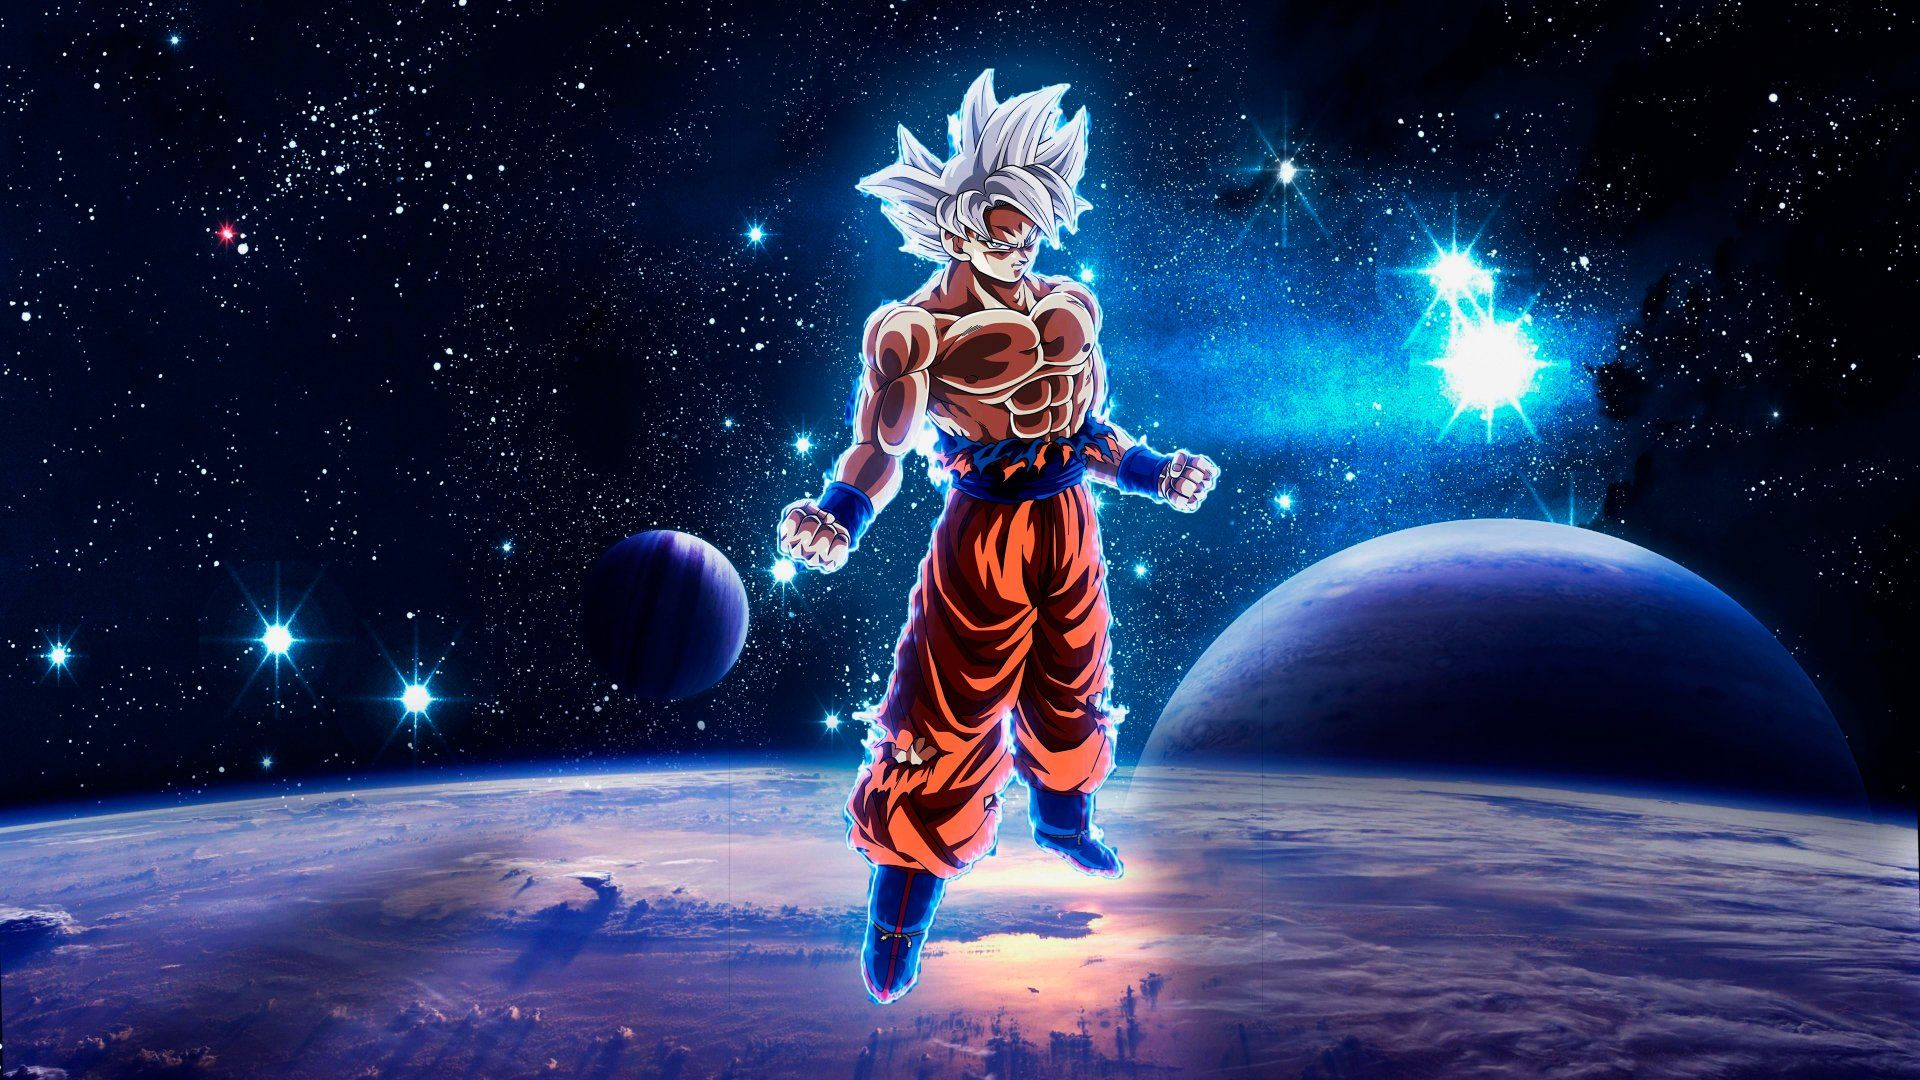 Goku Ultra Instinct 4k Ultra Hd Wallpaper And Hintergrund Goku Ultra Instinct Wallpaper Goku Wallpaper Dragon Ball Super Wallpapers